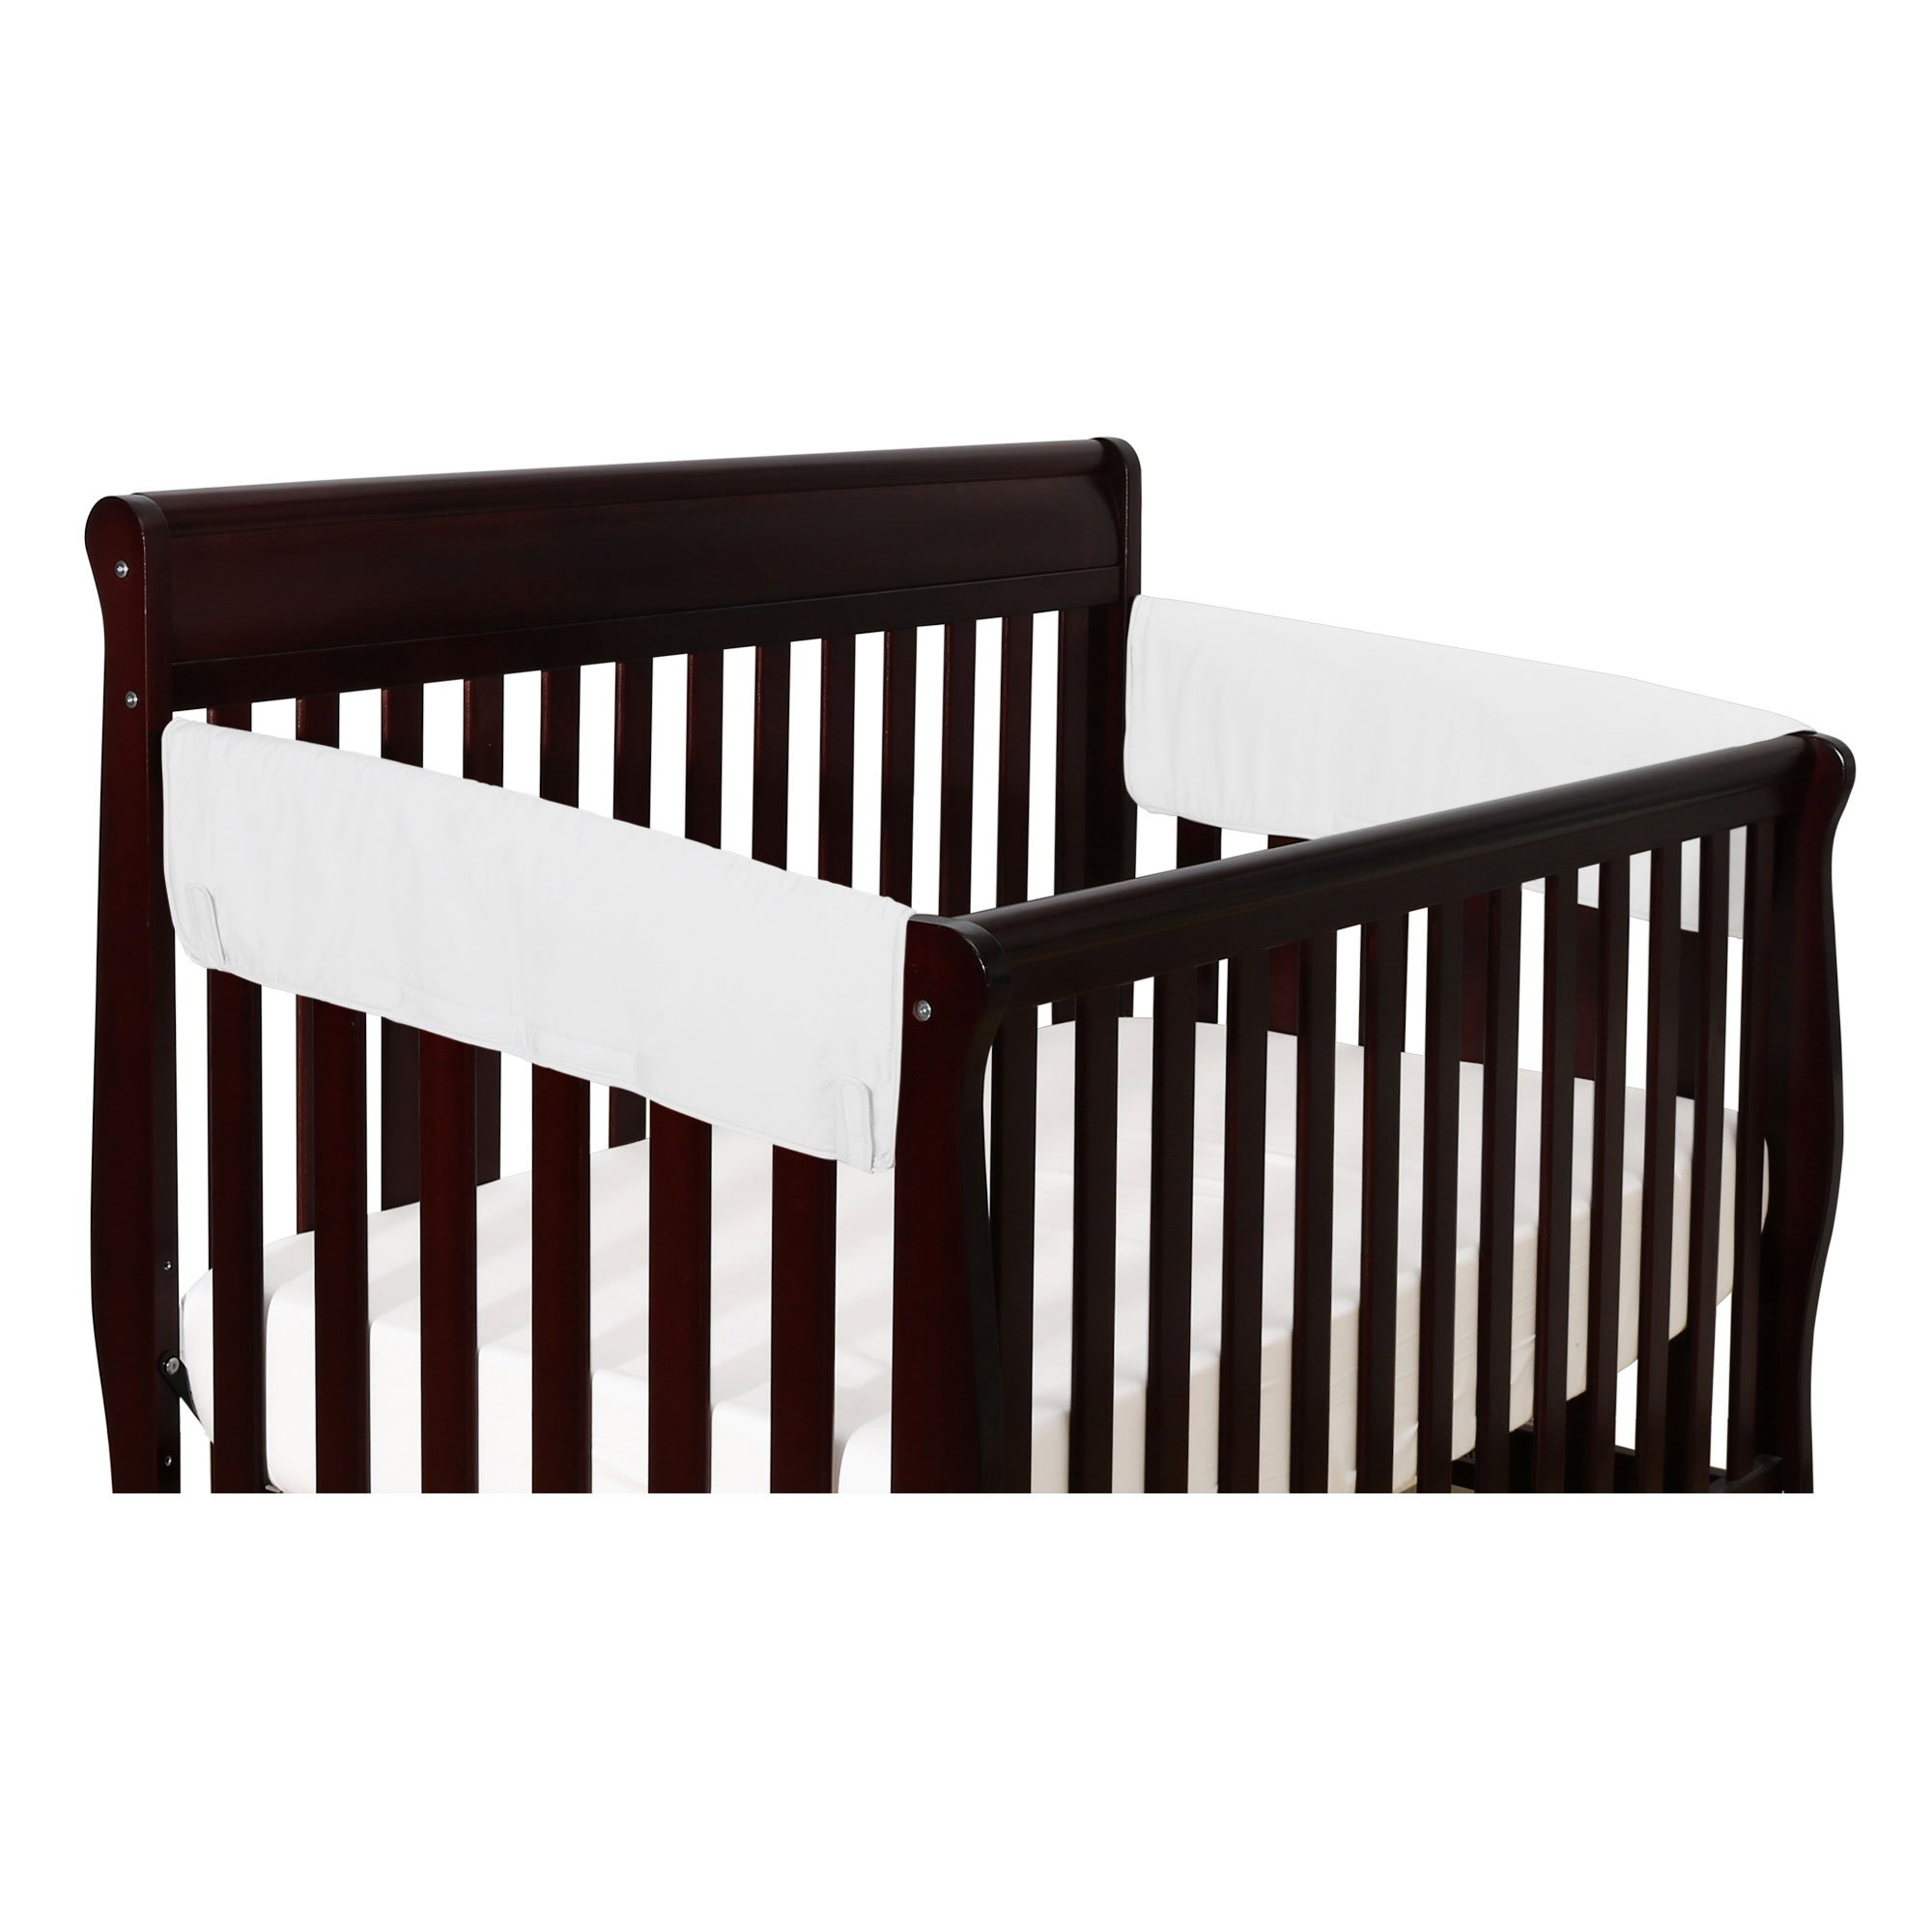 Solid White 2-Pack Side Crib Rail Guard Padded Protectors - 100% Cotton Fabrics by The Peanut Shell (Image #1)